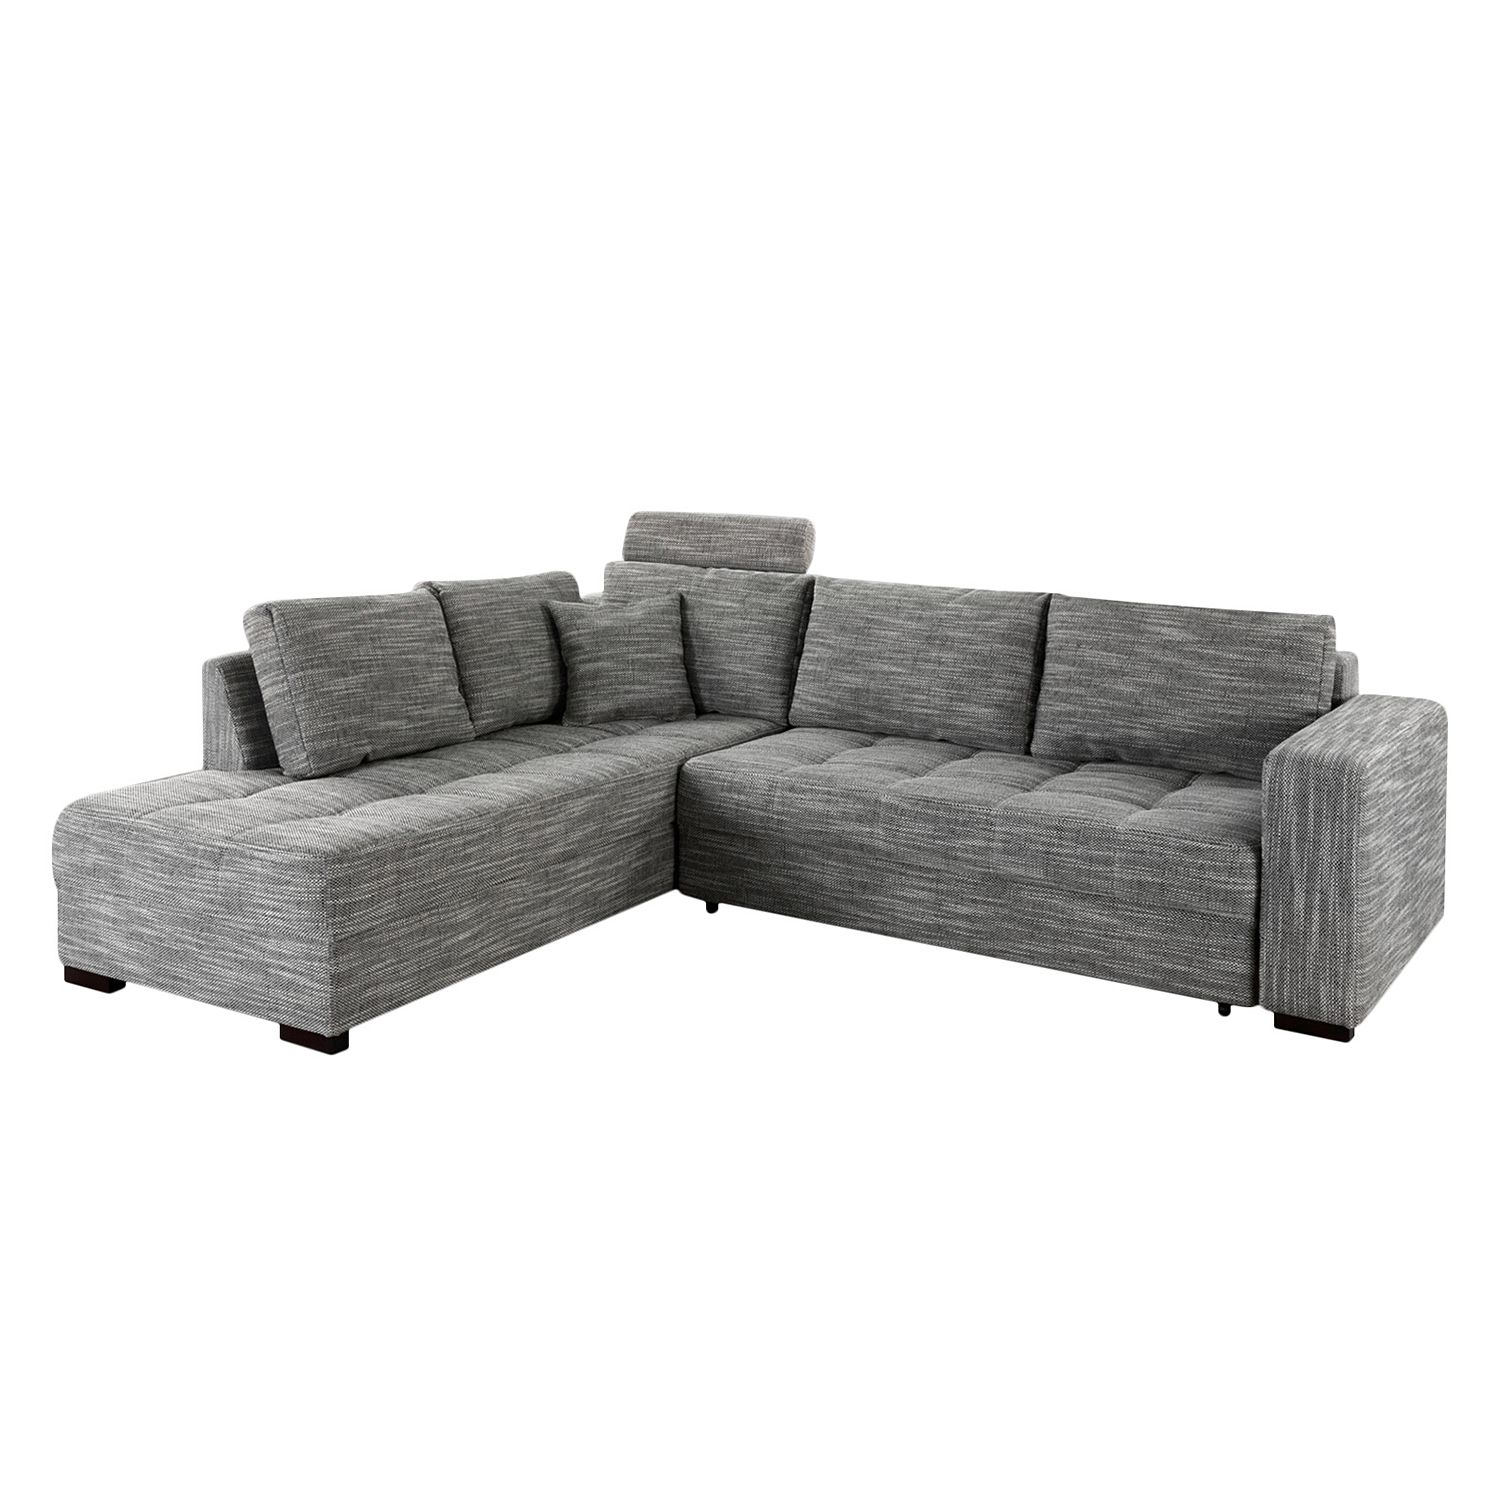 ecksofa mit schlaffunktion t rkis inspirierendes design f r wohnm bel. Black Bedroom Furniture Sets. Home Design Ideas